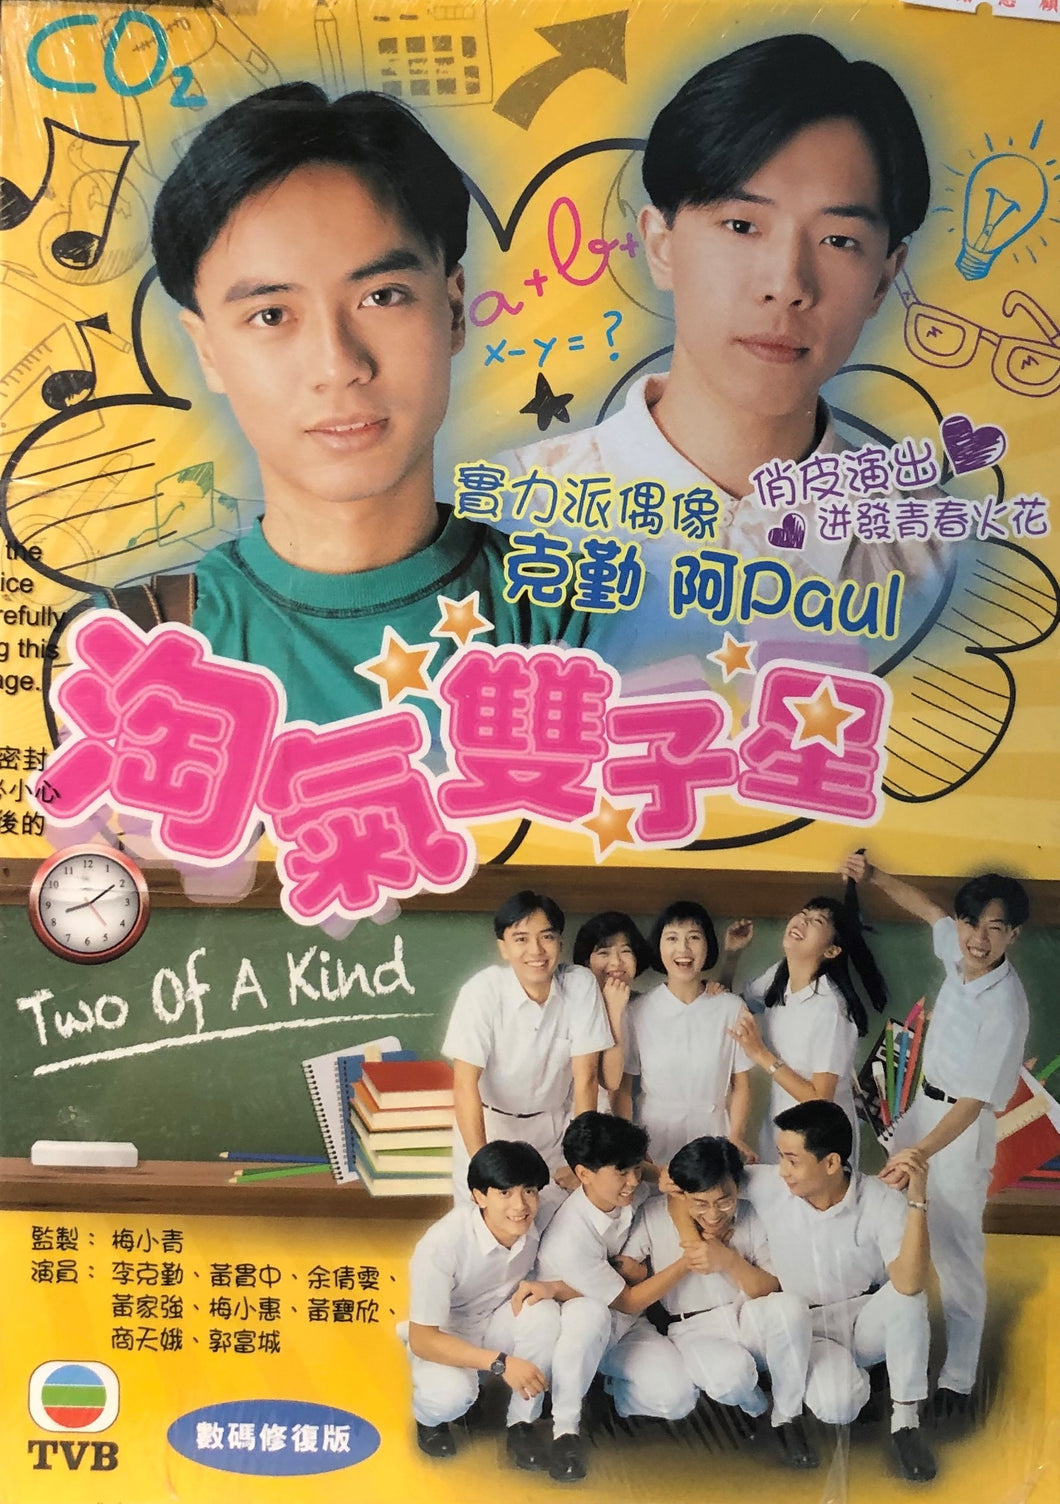 TWO OF A KIND 淘氣雙子星 TVB (2DVD) NON ENGLISH SUB (REGION FREE)